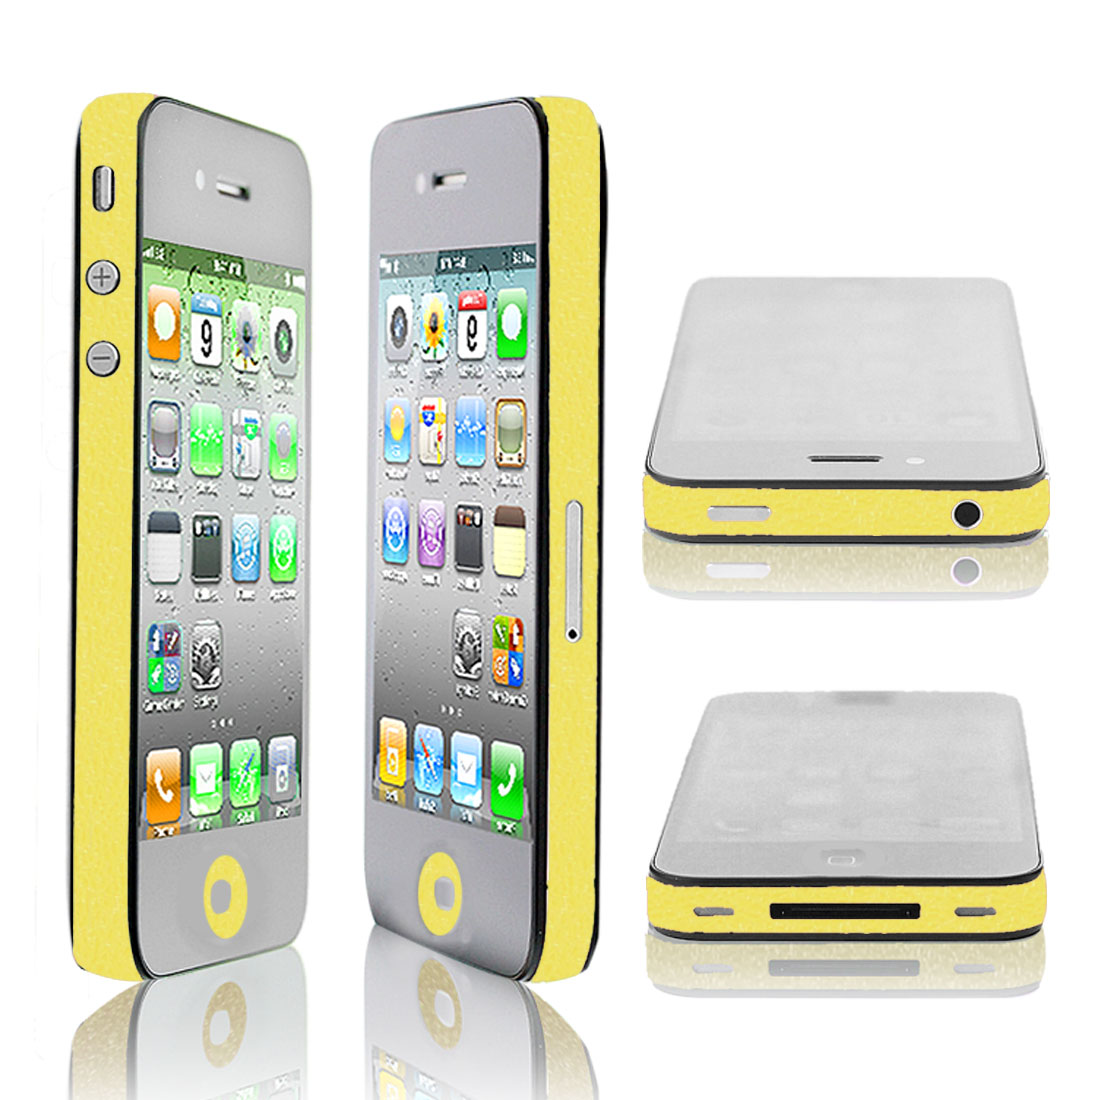 Self Adhesive Yellow Decor Edge Wrap Decal Sticker Set for iPhone 4G 4S